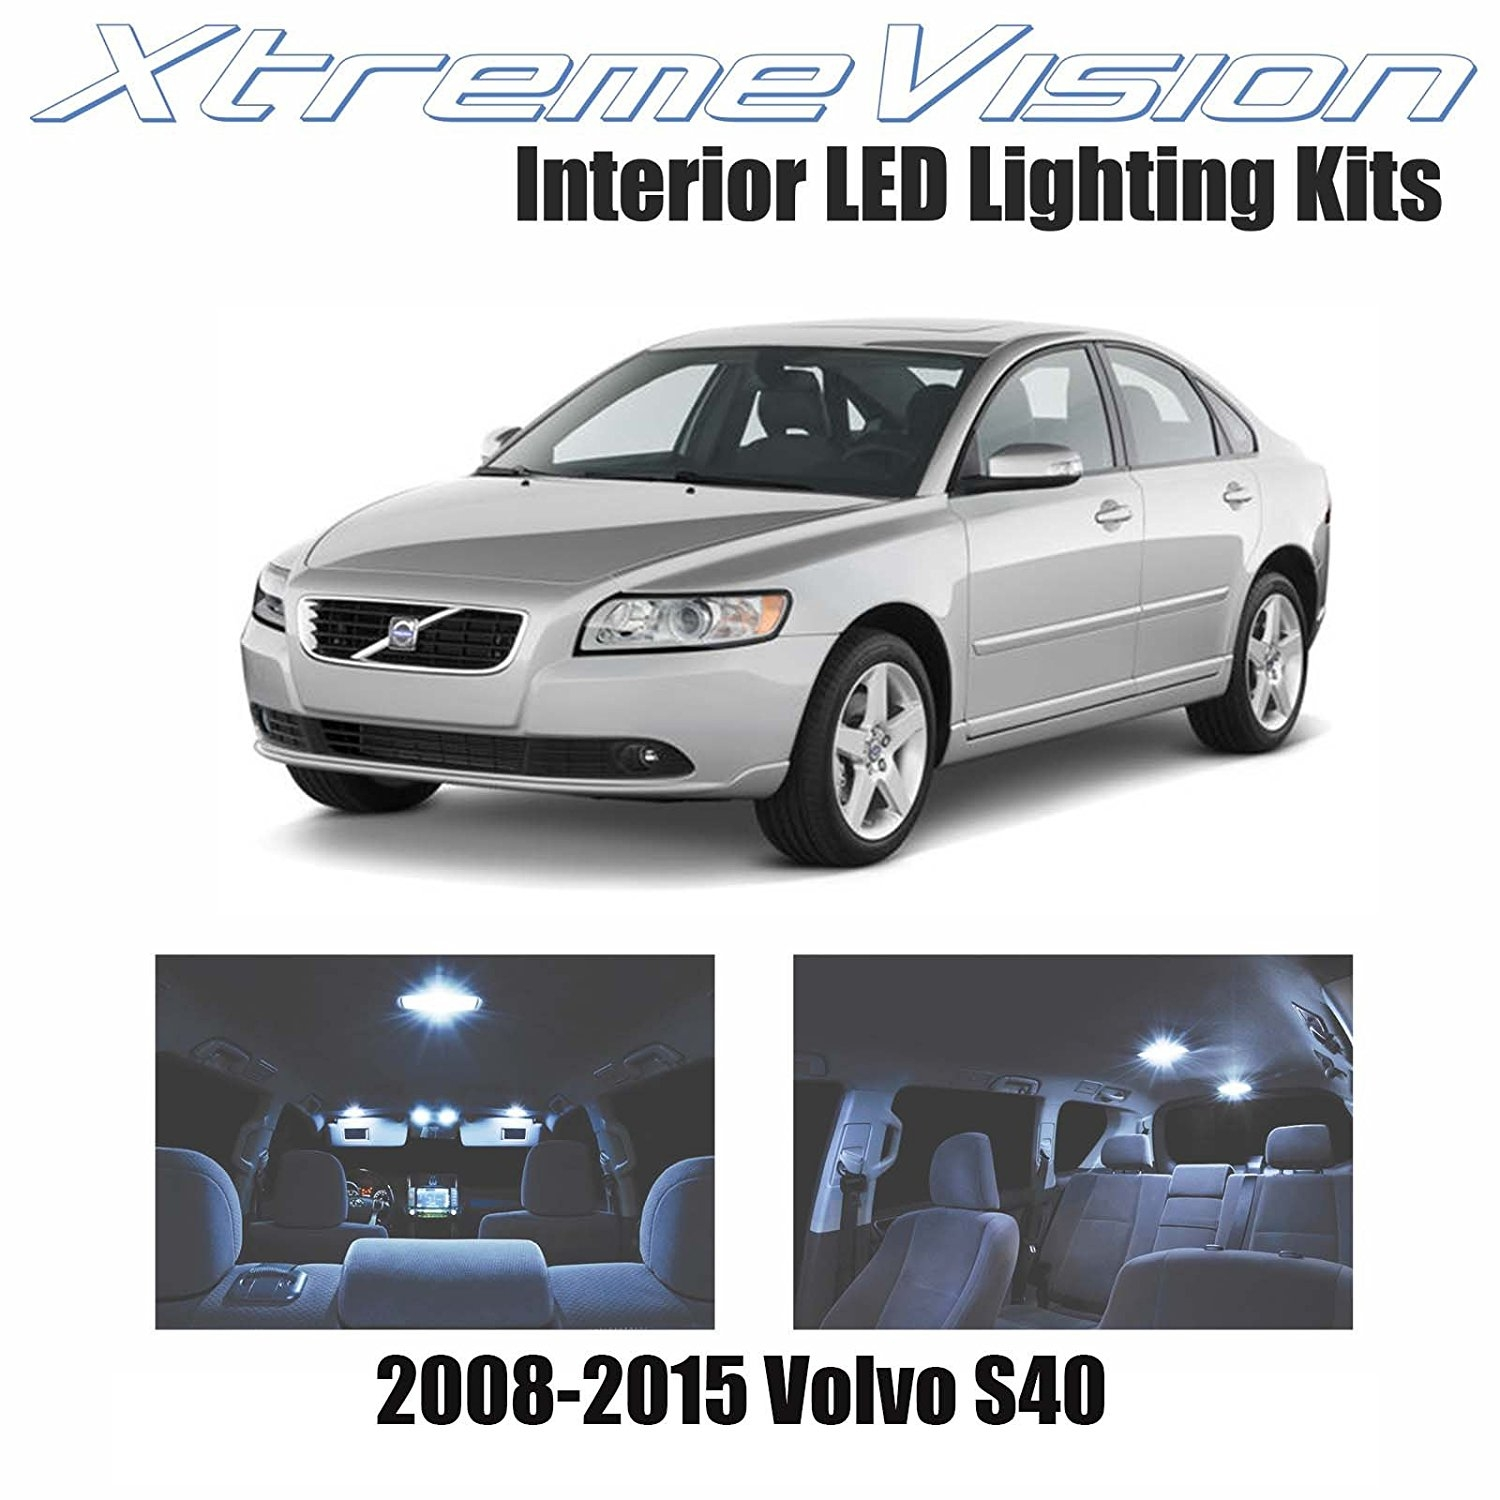 XtremeVision LED for Volvo S40 2008-2015 (8 Pieces) Cool White Premium Interior LED Kit Package + Installation Tool